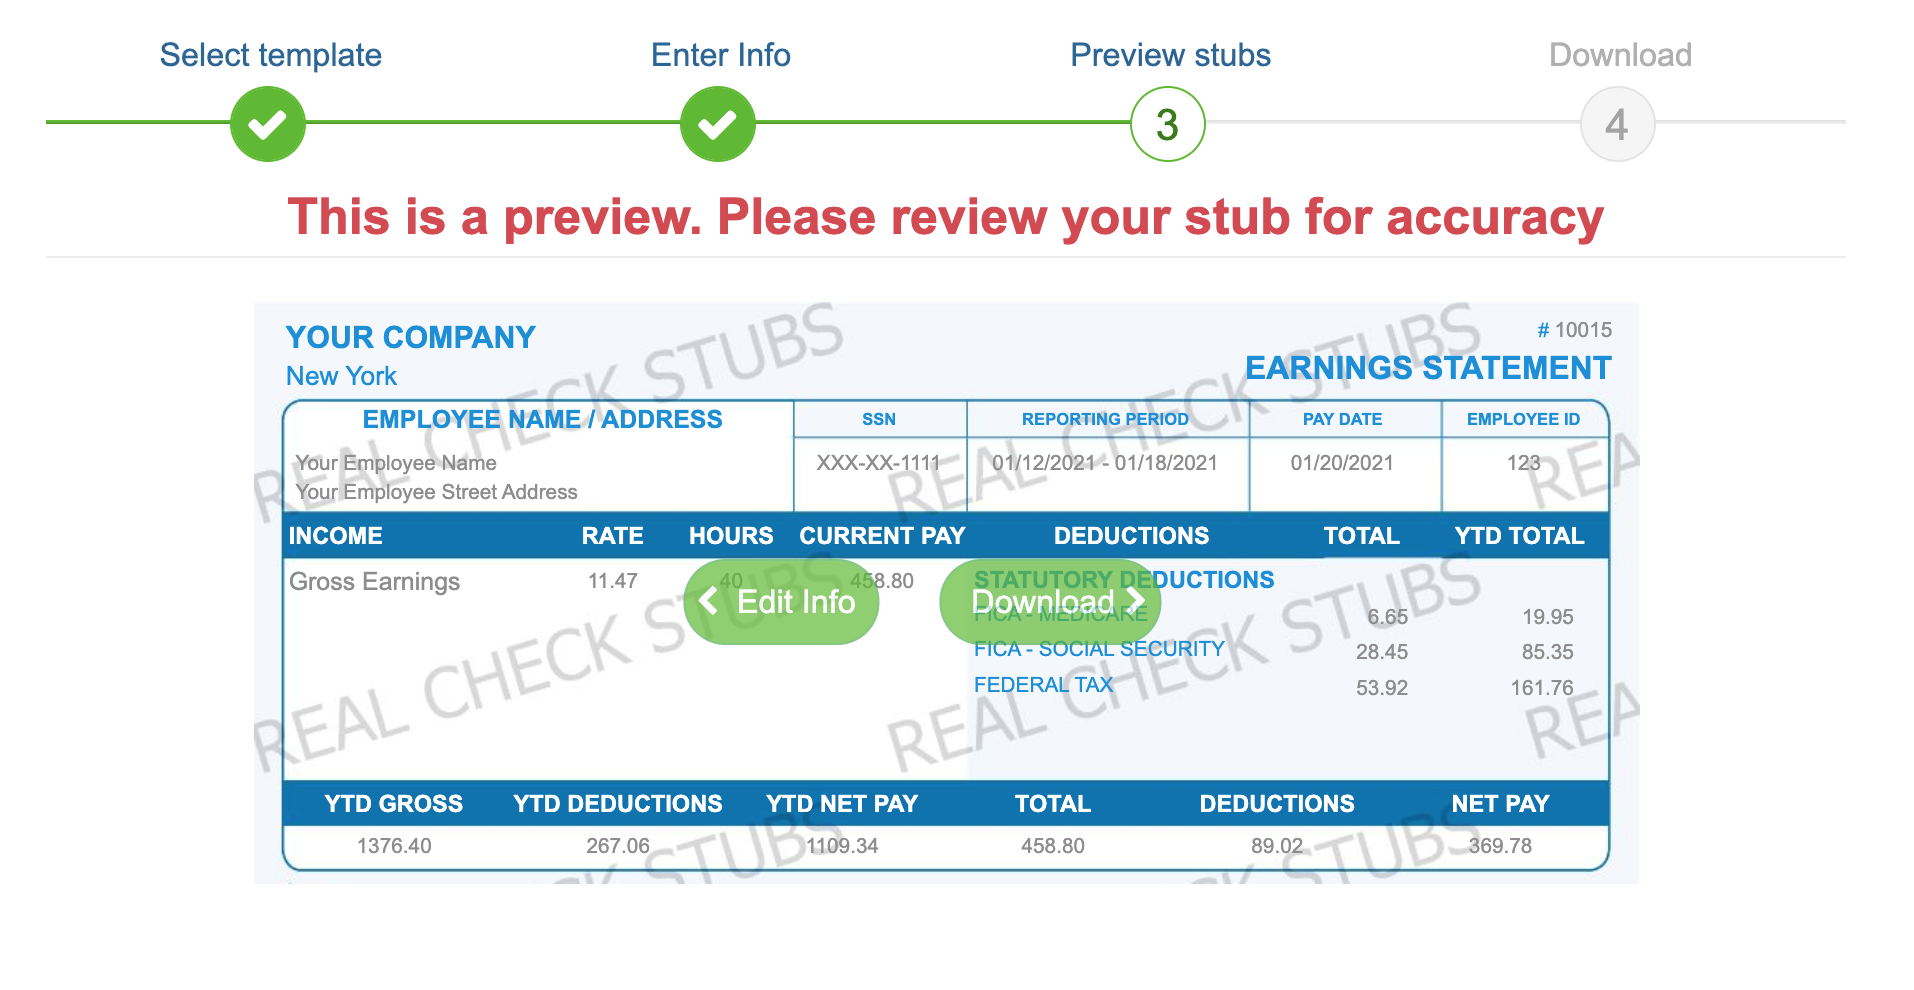 preview pay stub realcheckstubs.png